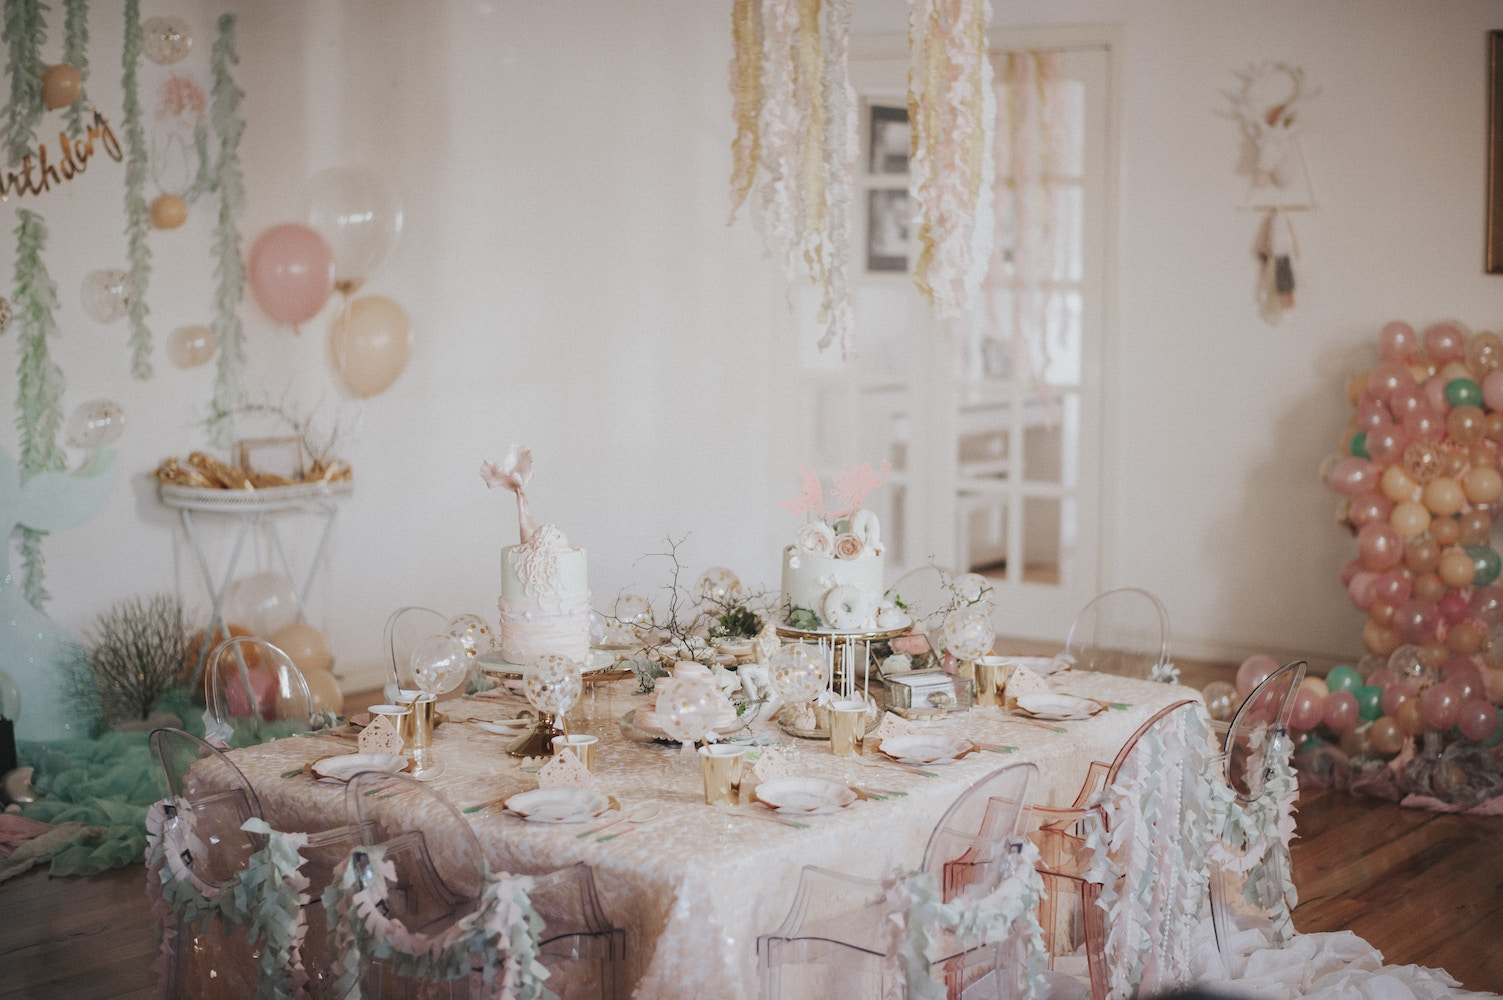 DREAM A LITTLE DREAM MERMAID PARTY